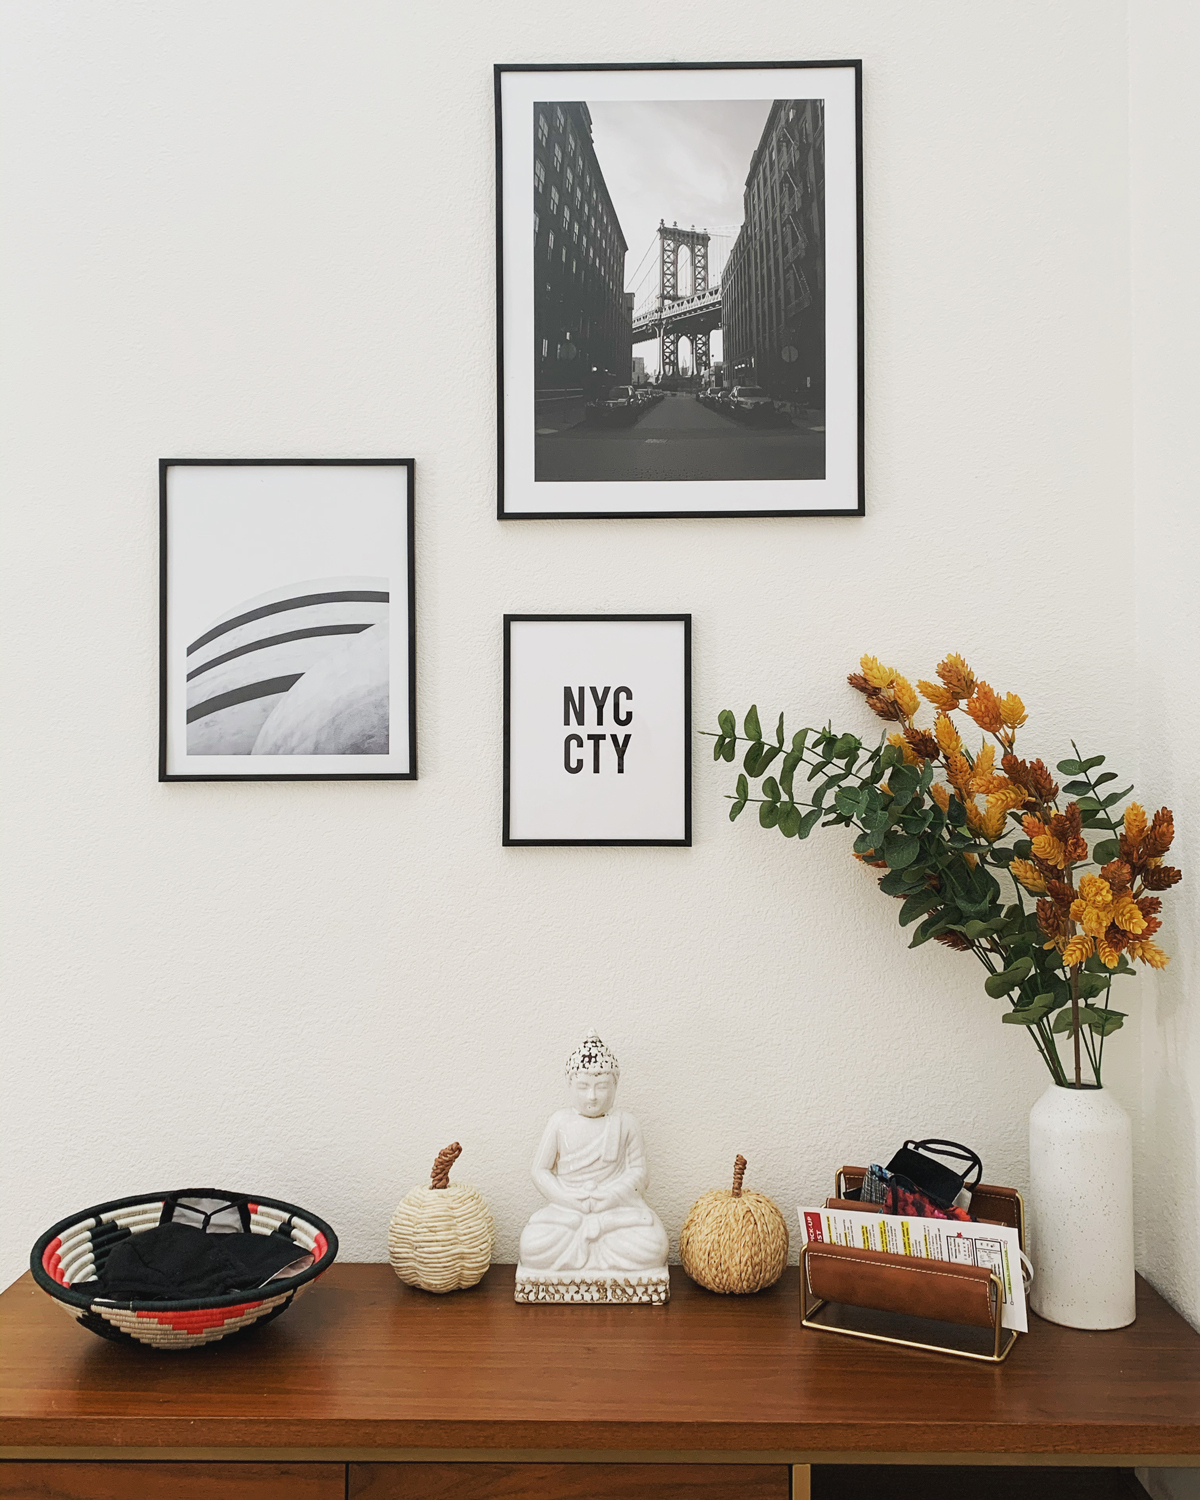 Gallery wall with framed art and photos